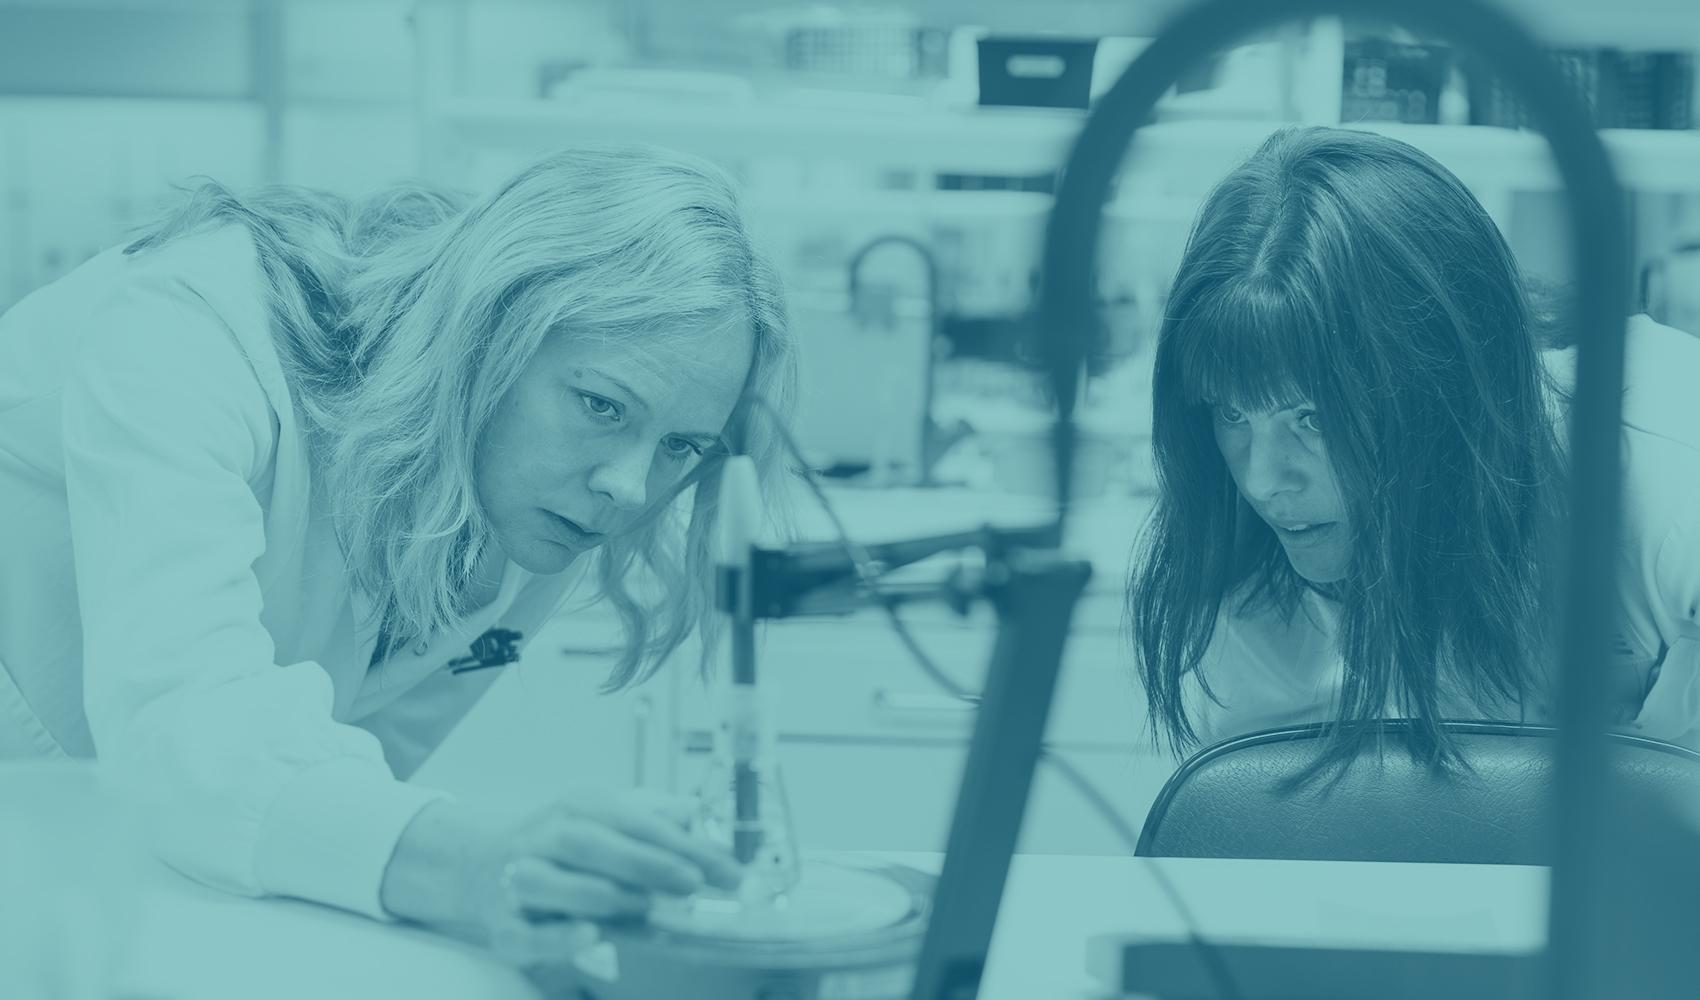 Women working in a lab environment